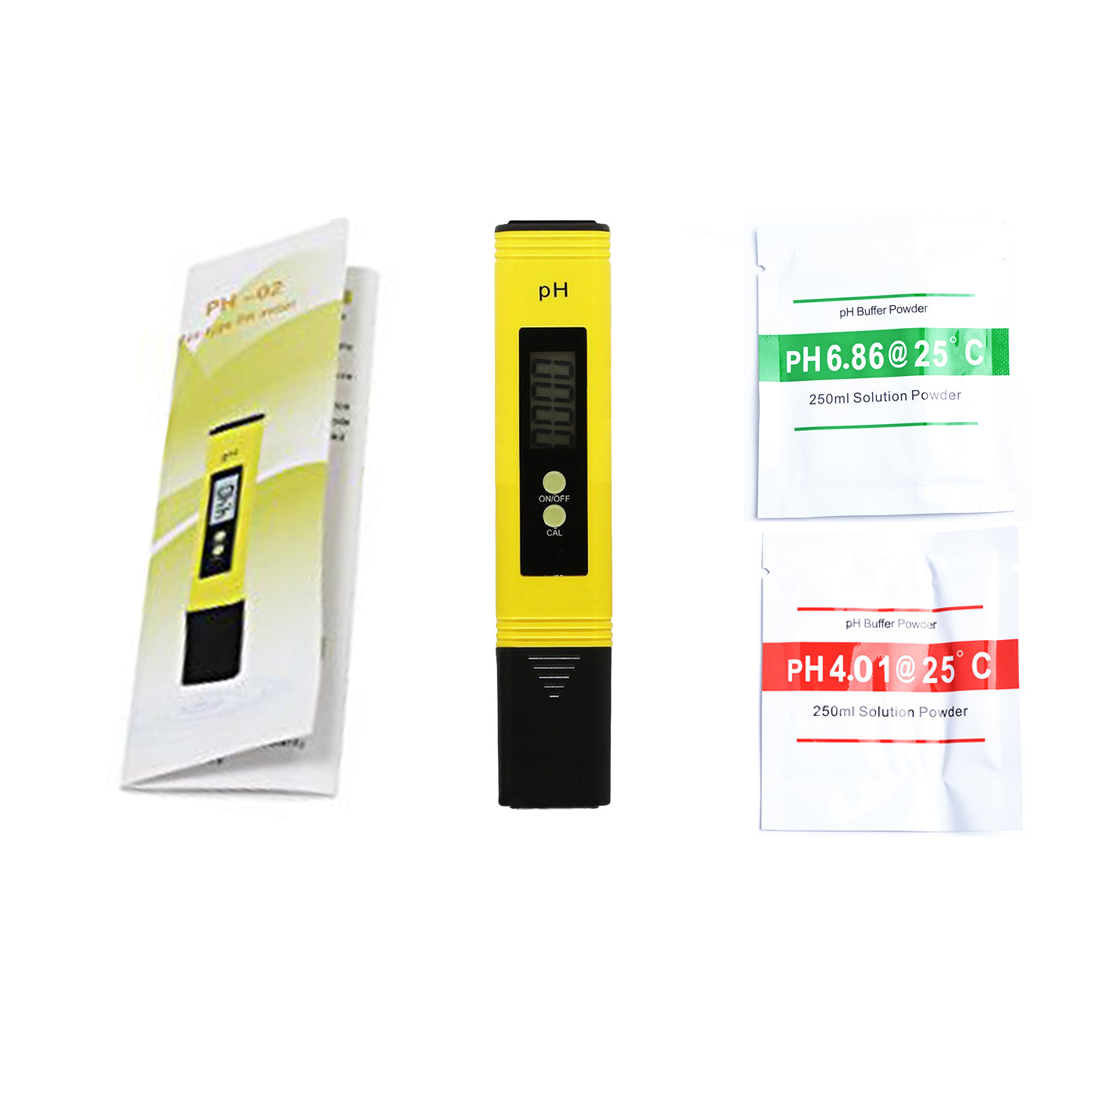 Portable LCD Digital PH Meter Range 0~14 Accuracy 0.1 Aquarium Pool Water Wine Urine Automatic Calibration Pocket Pen of TesterPortable LCD Digital PH Meter Range 0~14 Accuracy 0.1 Aquarium Pool Water Wine Urine Automatic Calibration Pocket Pen of Tester